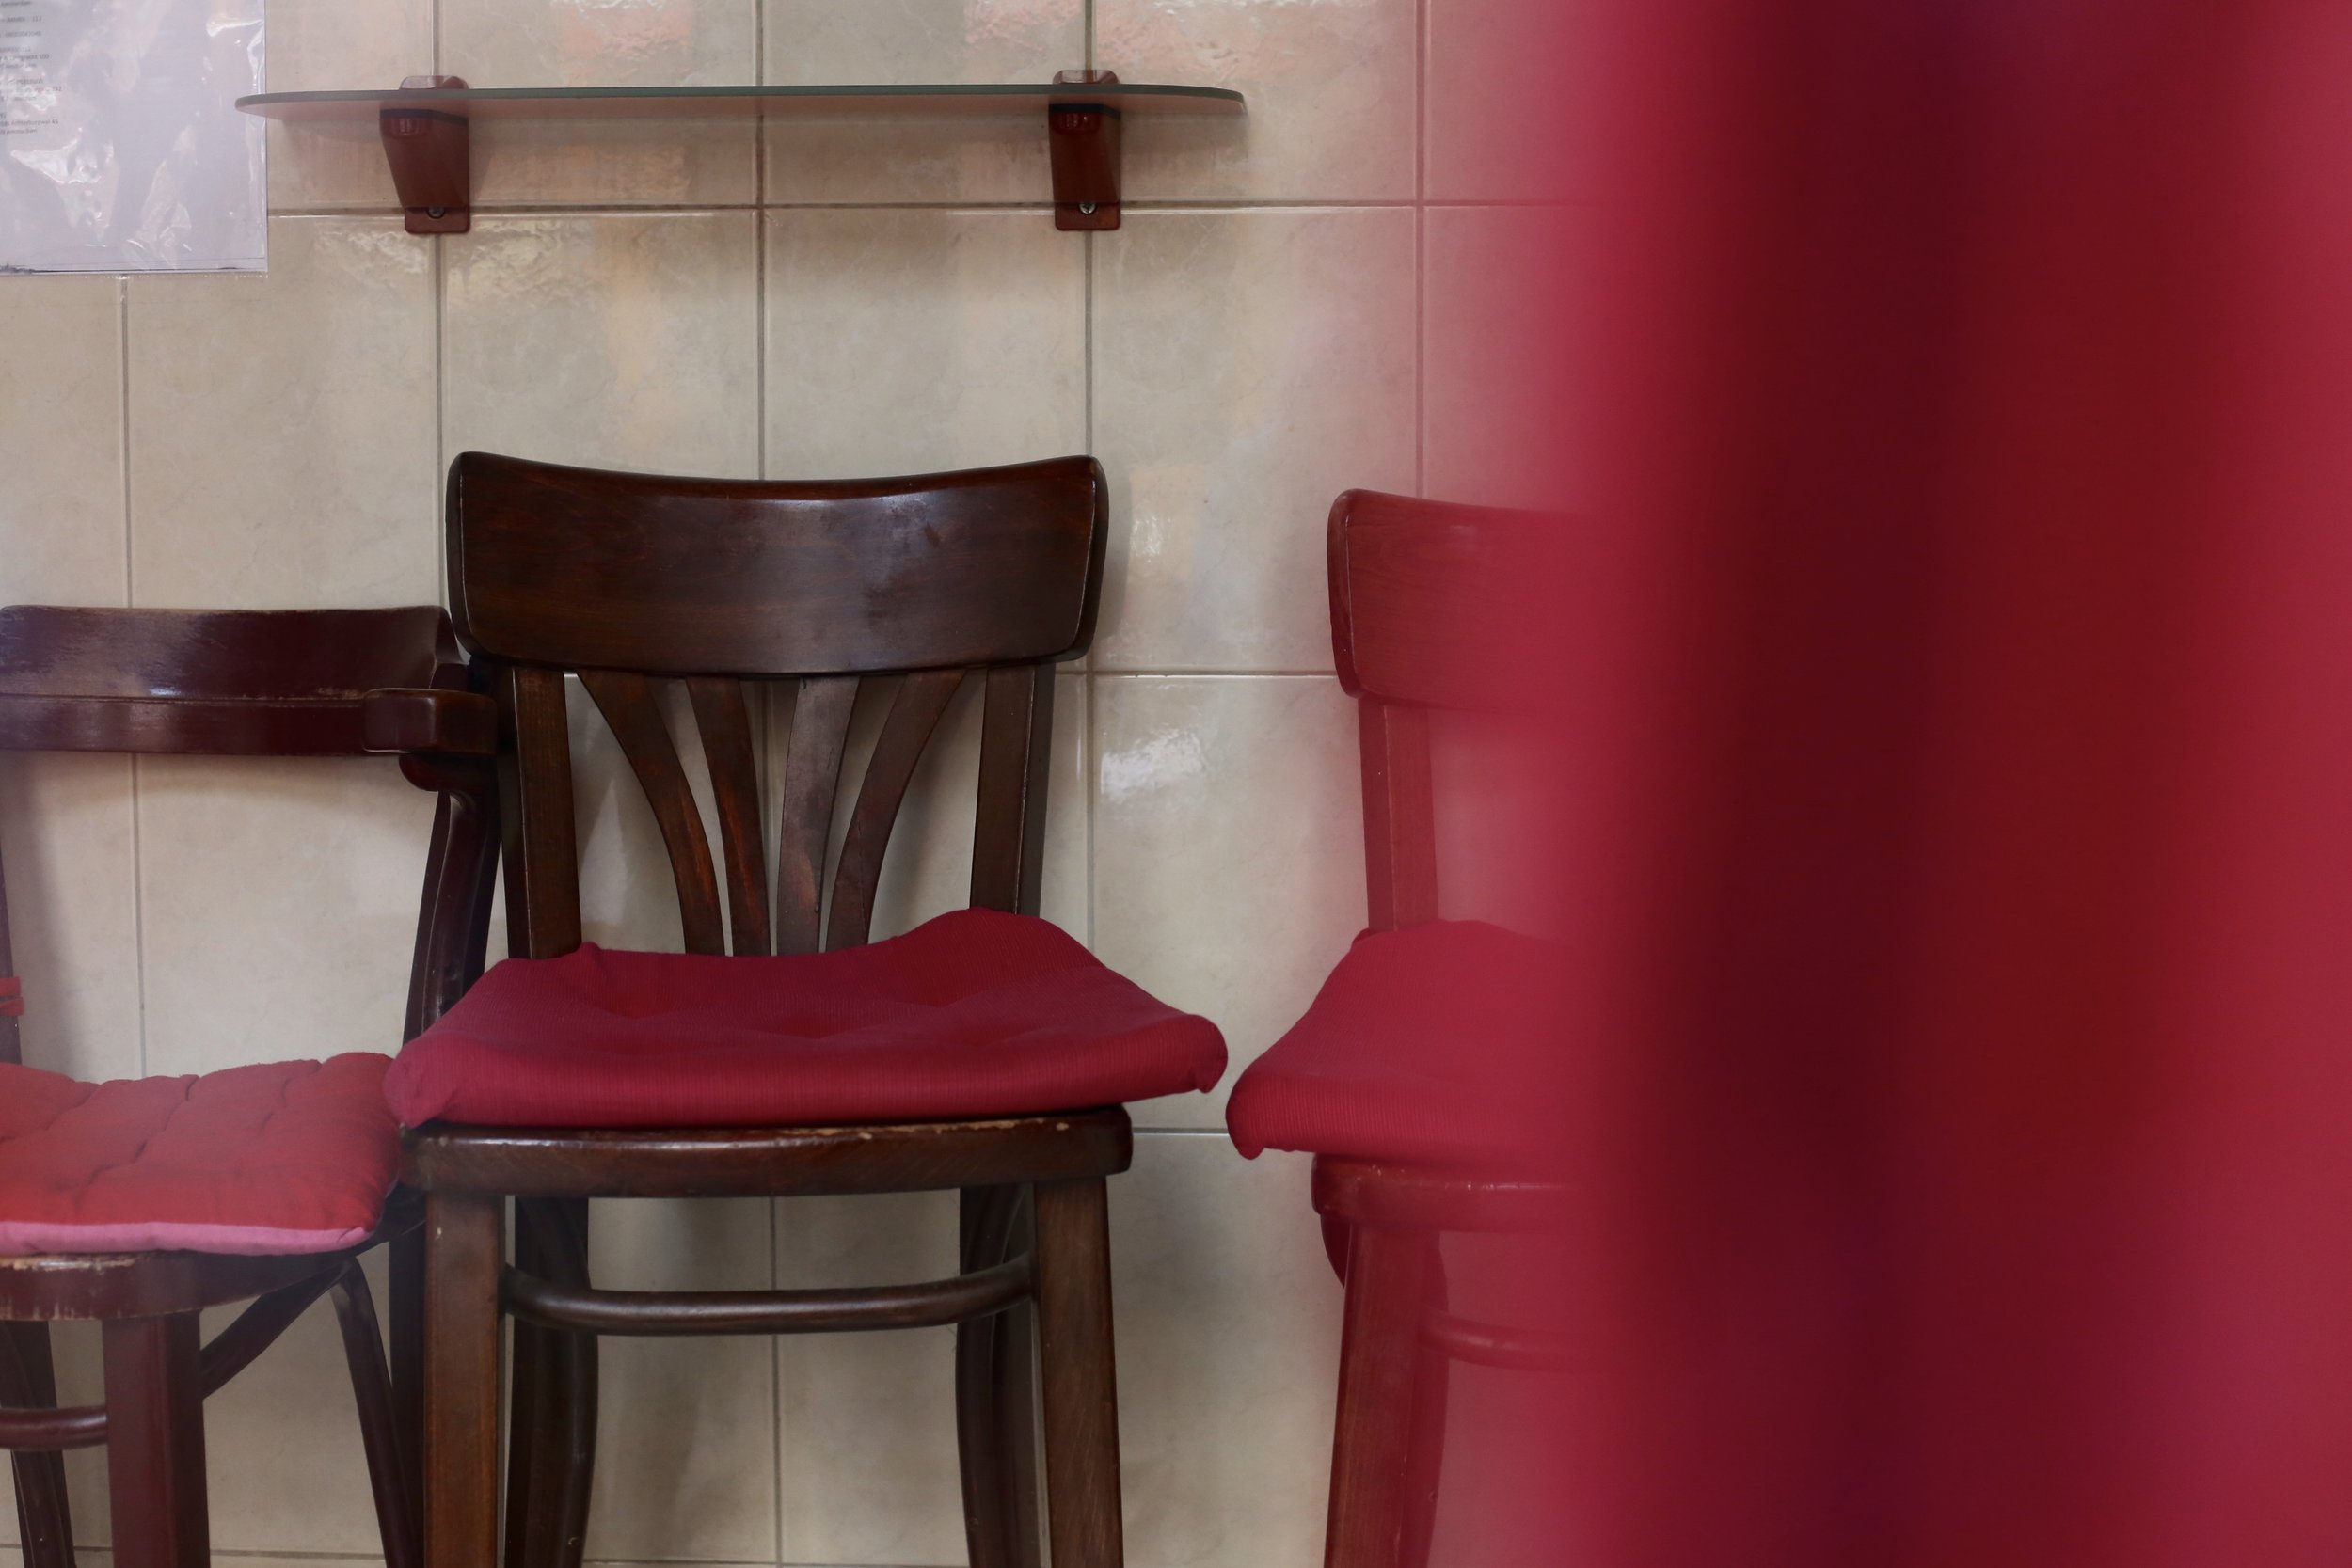 An empty red chair in a window of the Red Light District, Amsterdam.